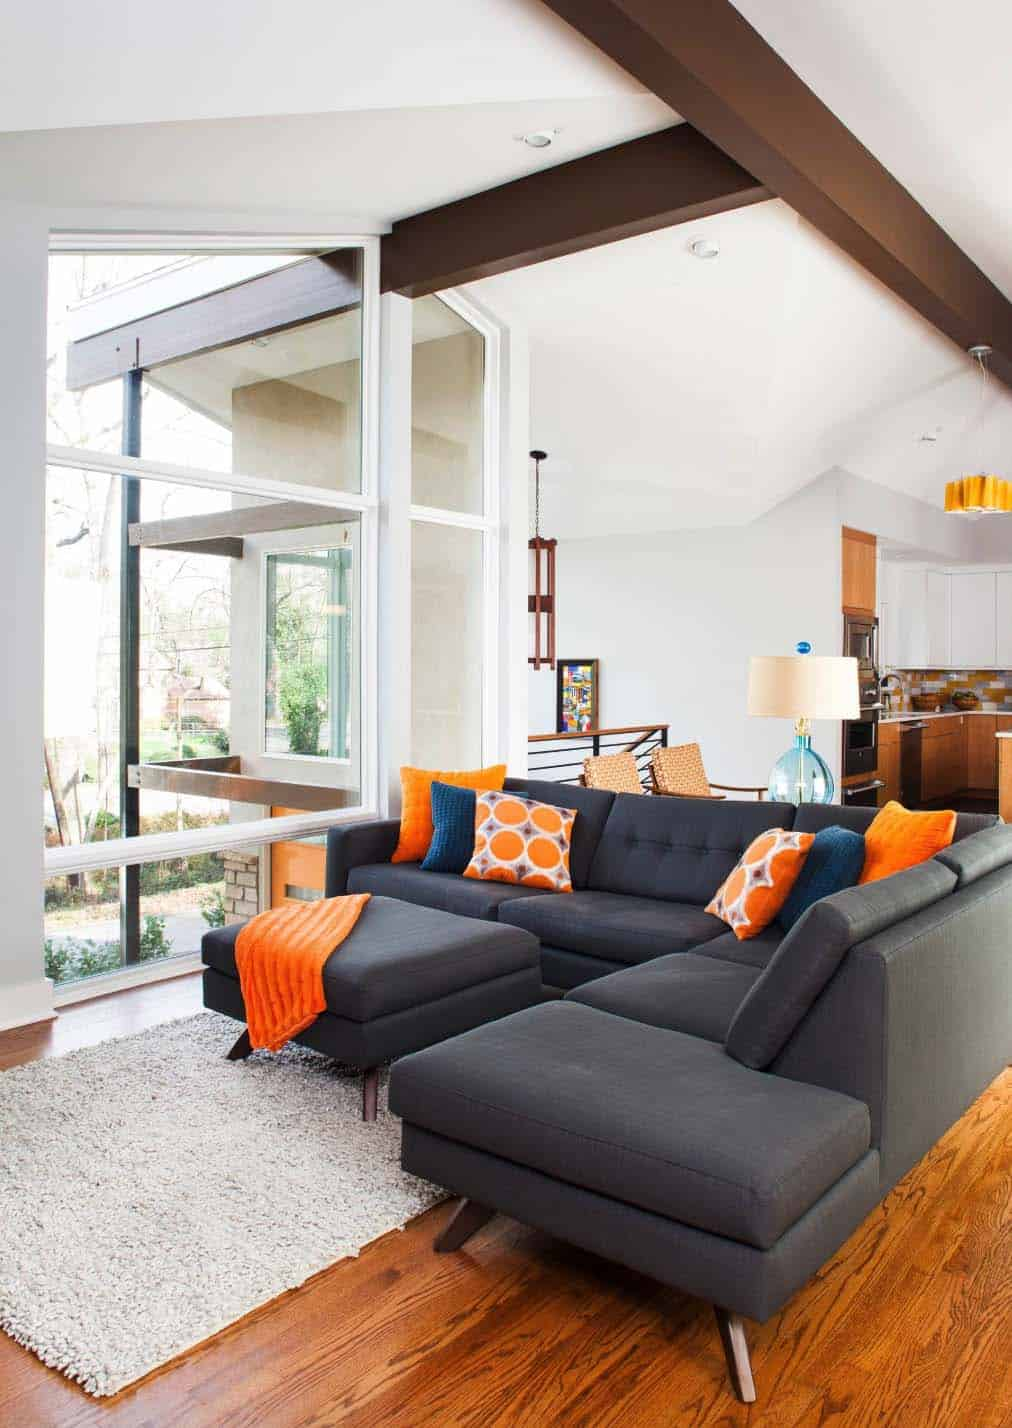 Living Room Design Contemporary: 38 Absolutely Gorgeous Mid-century Modern Living Room Ideas